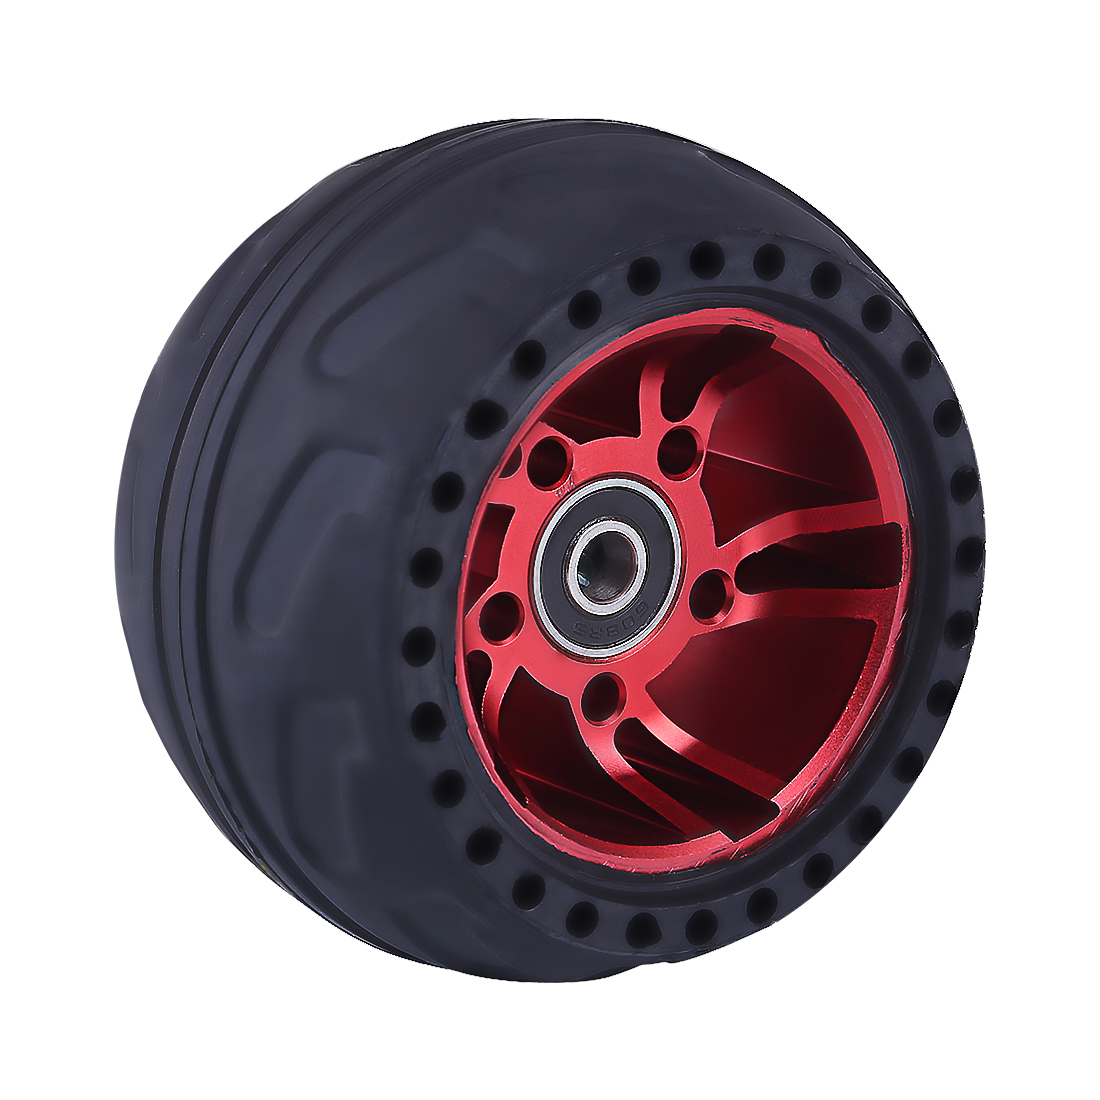 2 Pcs /set 105LMH All Terrain Wheel Rubber Tire - Red